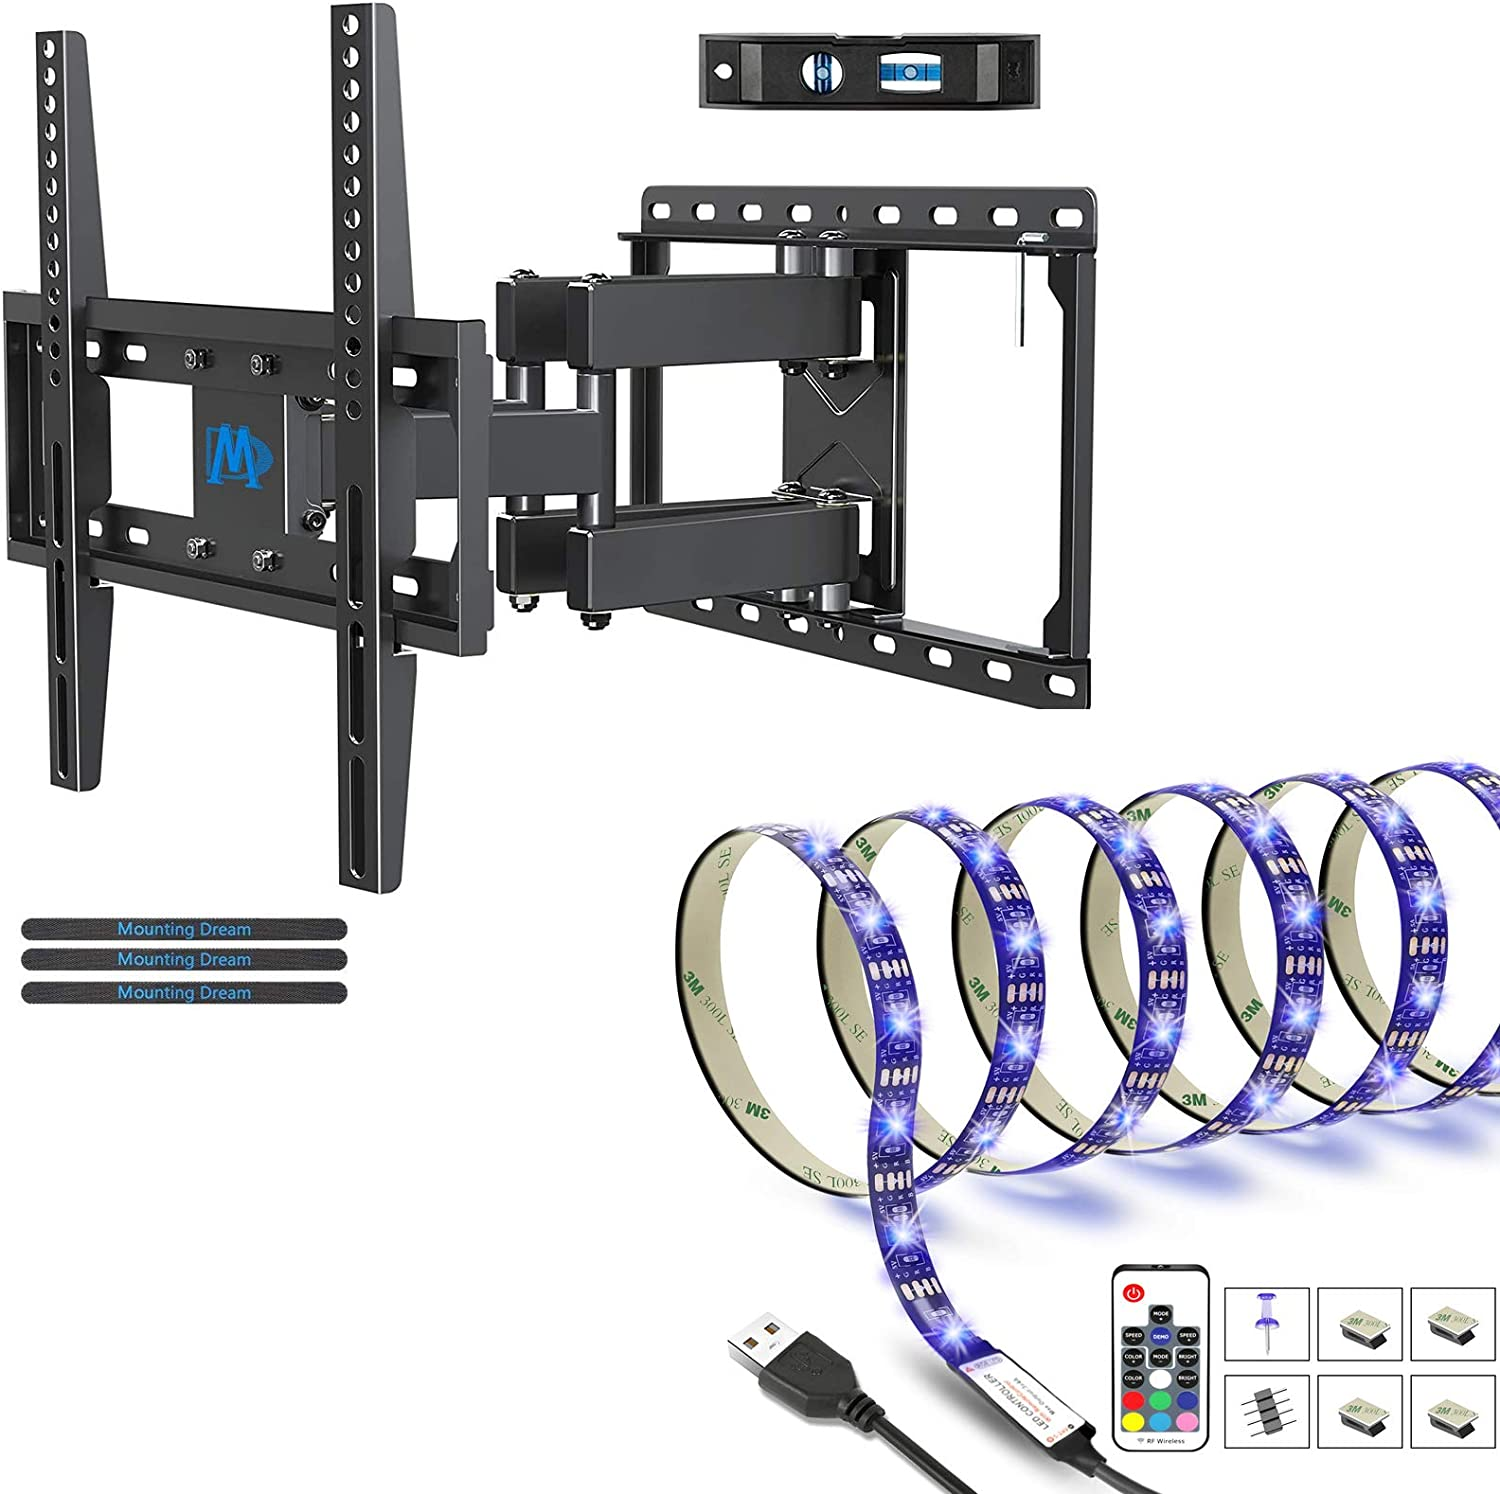 Mounting Dream UL Listed TV Mount TV Wall Mount with Swivel and Tilt MD2380 for Most 32-55 Inch TV and Led TV Backlight with Remote 9.8ft for 42-70 inch TVs MD50S425